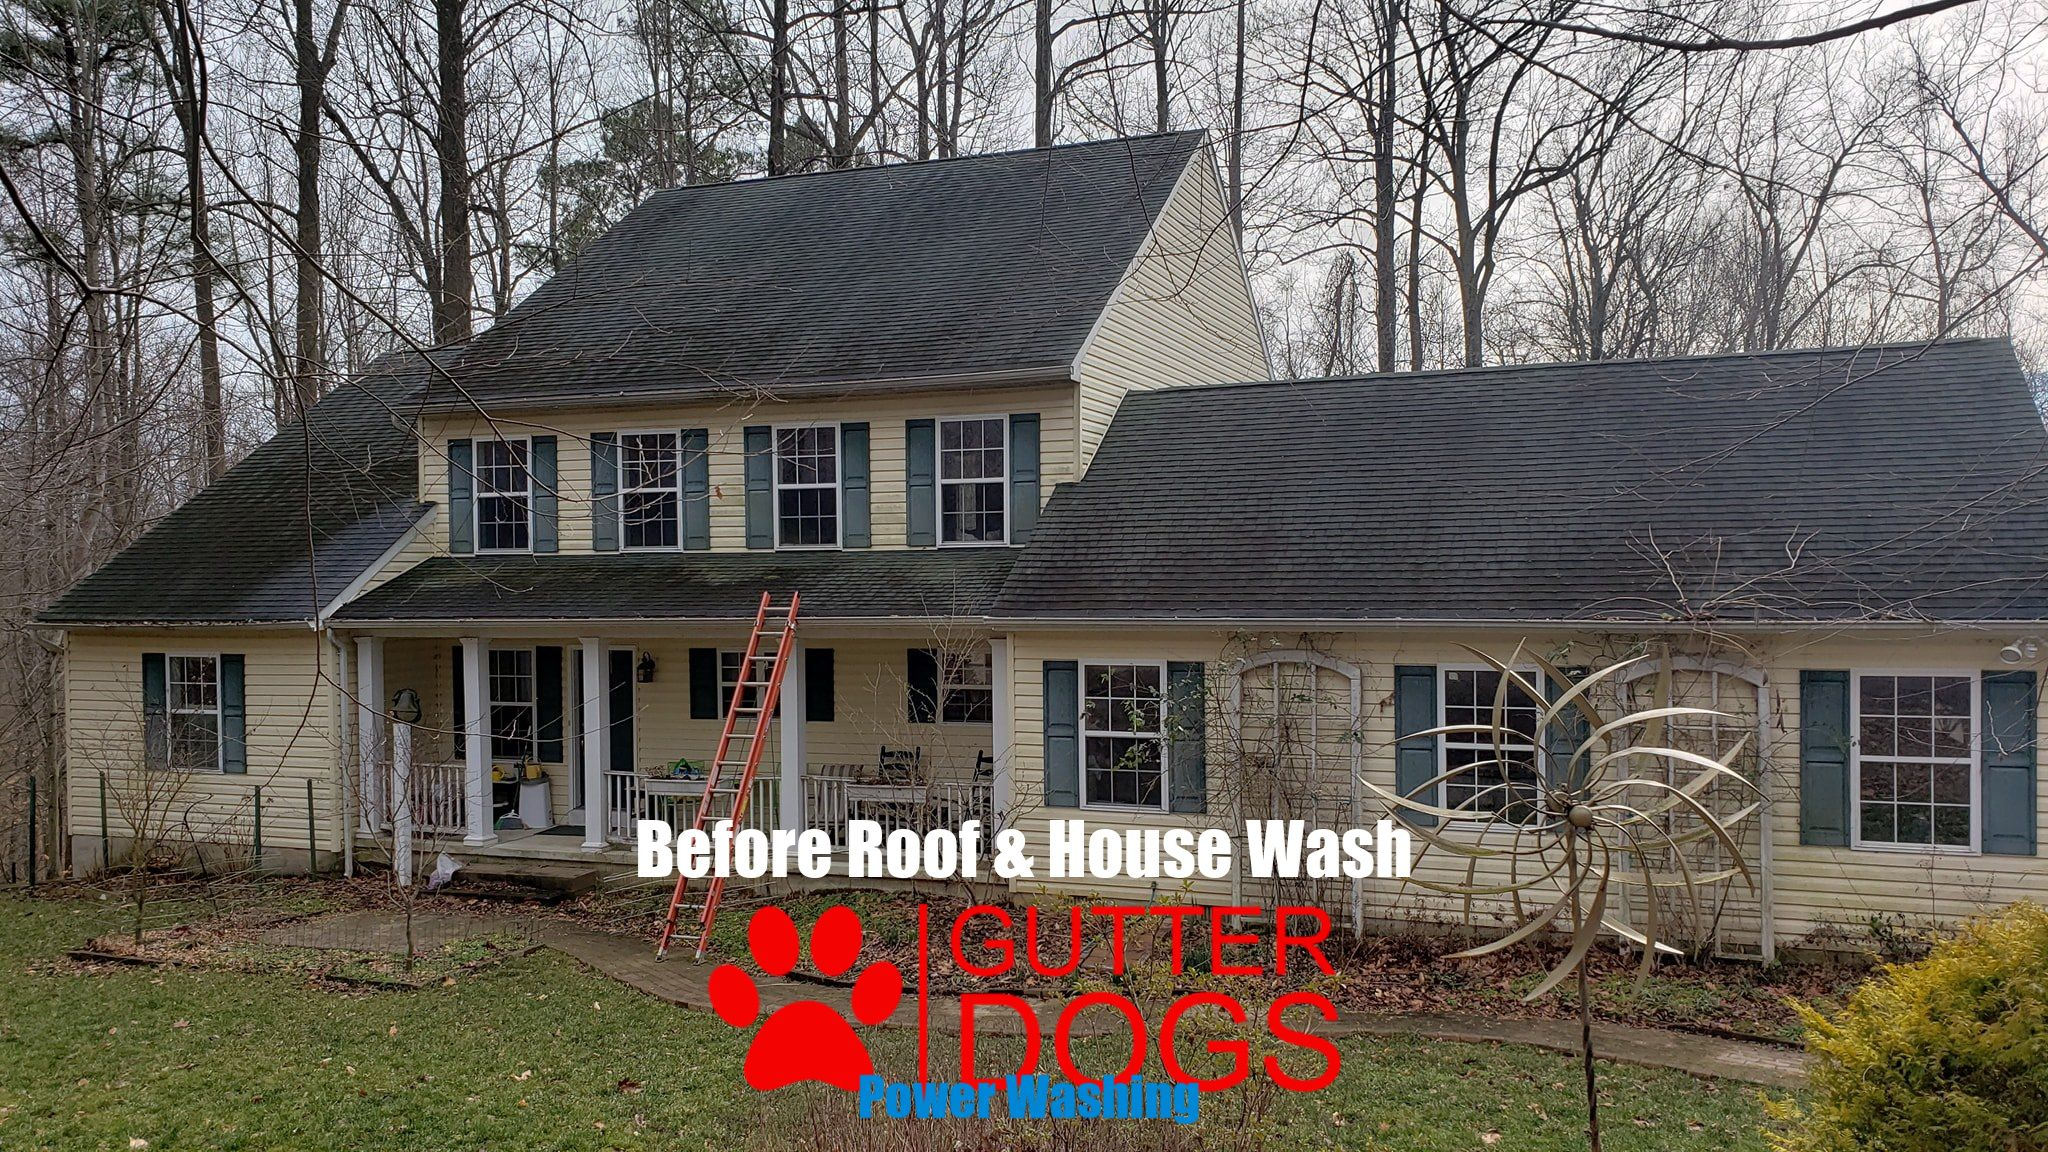 Roof Cleaning Package Deal In Chesapeake Beach Maryland Included Roof Cleaning House Washing And Gutter Cle In 2020 Roof Cleaning Chesapeake Beach Maryland House Wash